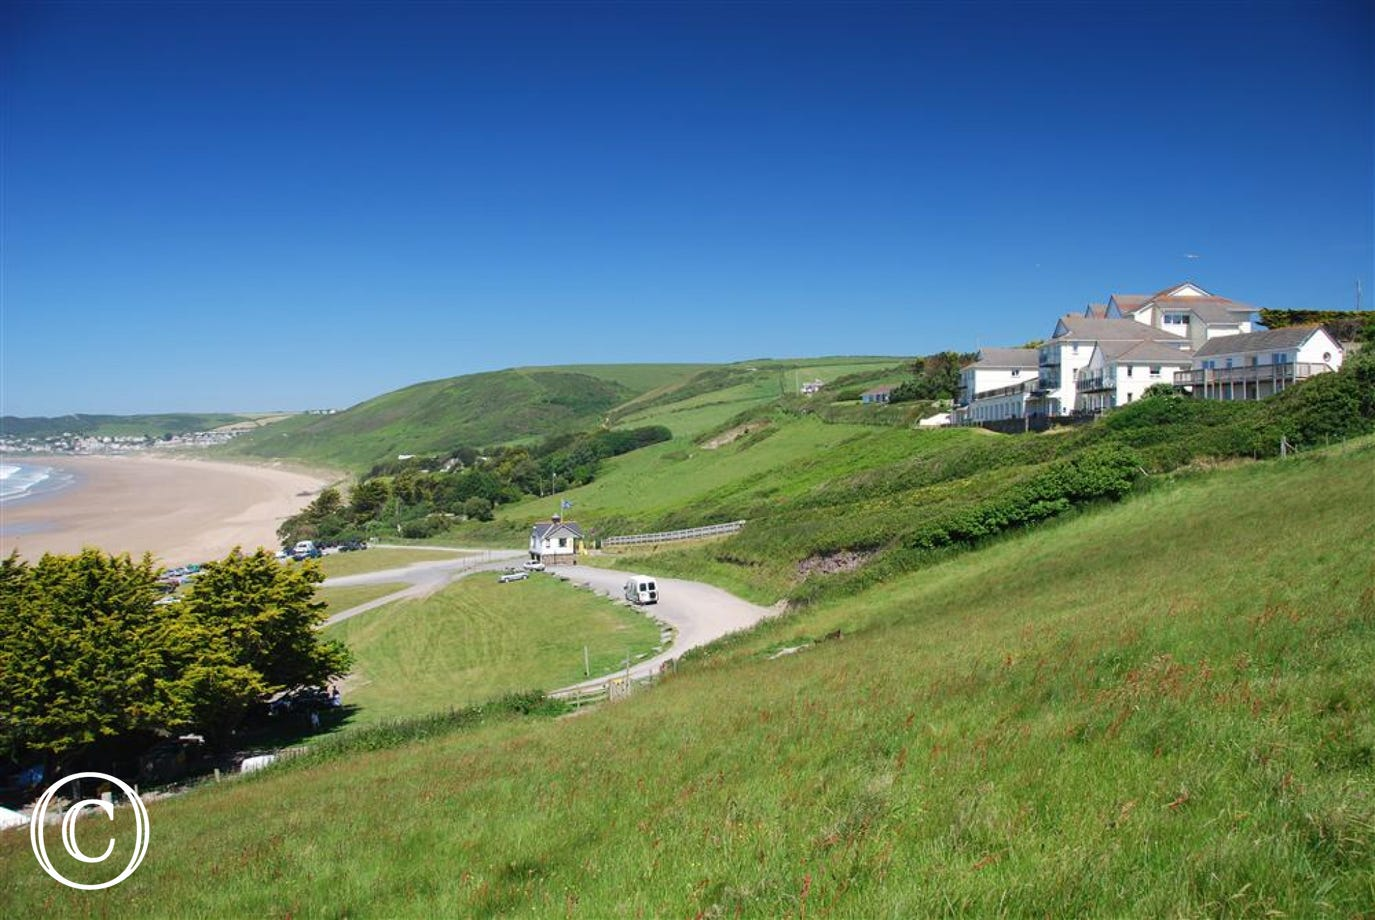 Spectacular views whilst enjoying a walk from Putsborough to Woolacombe.